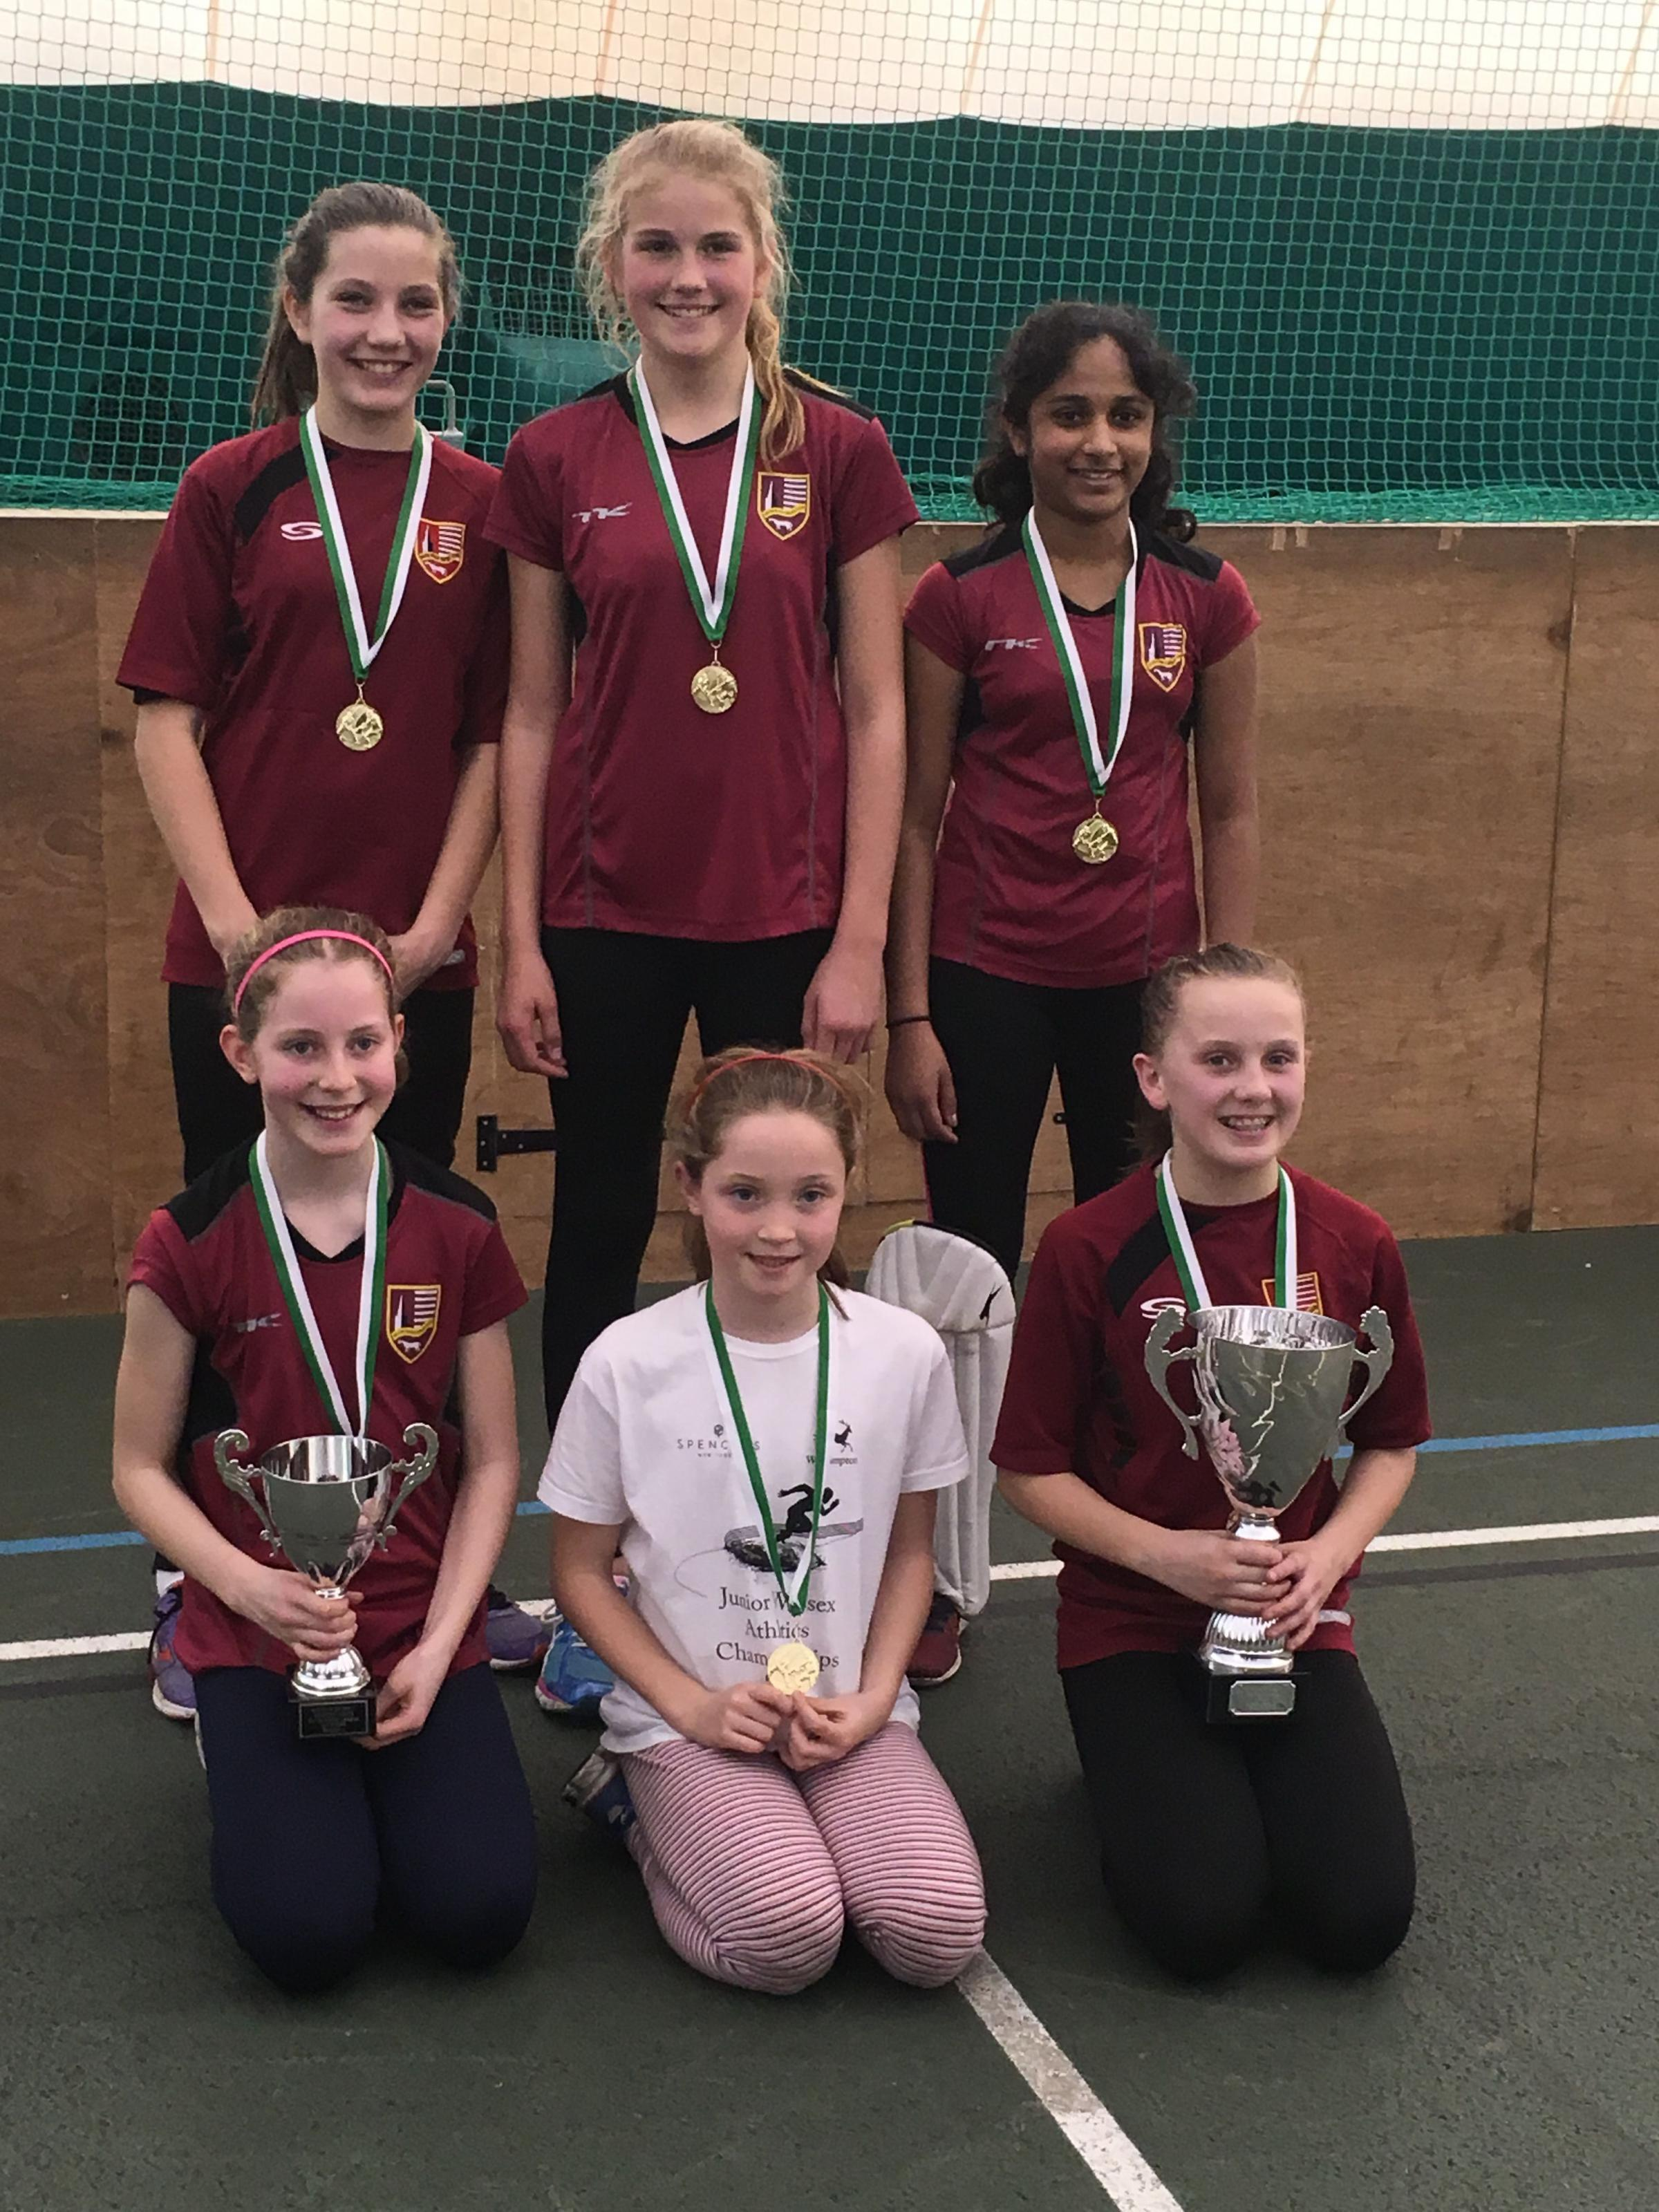 South Wilts Maidens retained their county indoor title